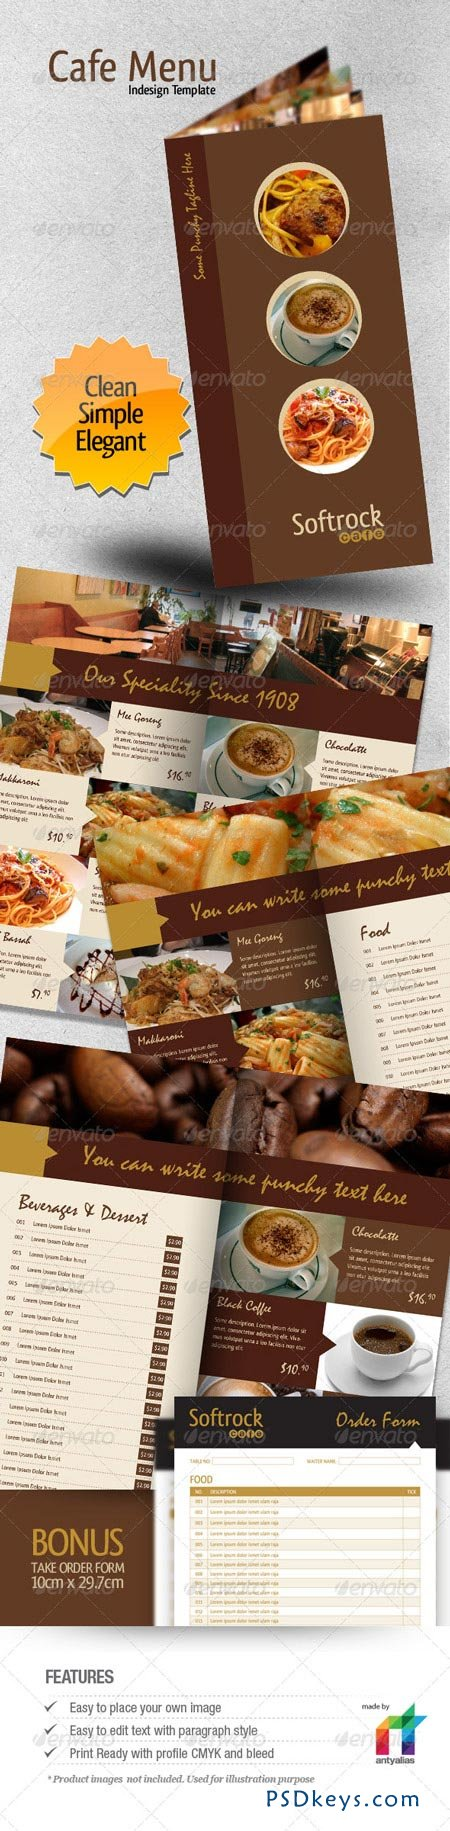 cafe menu indesign template 147838 free download photoshop vector stock image via torrent. Black Bedroom Furniture Sets. Home Design Ideas